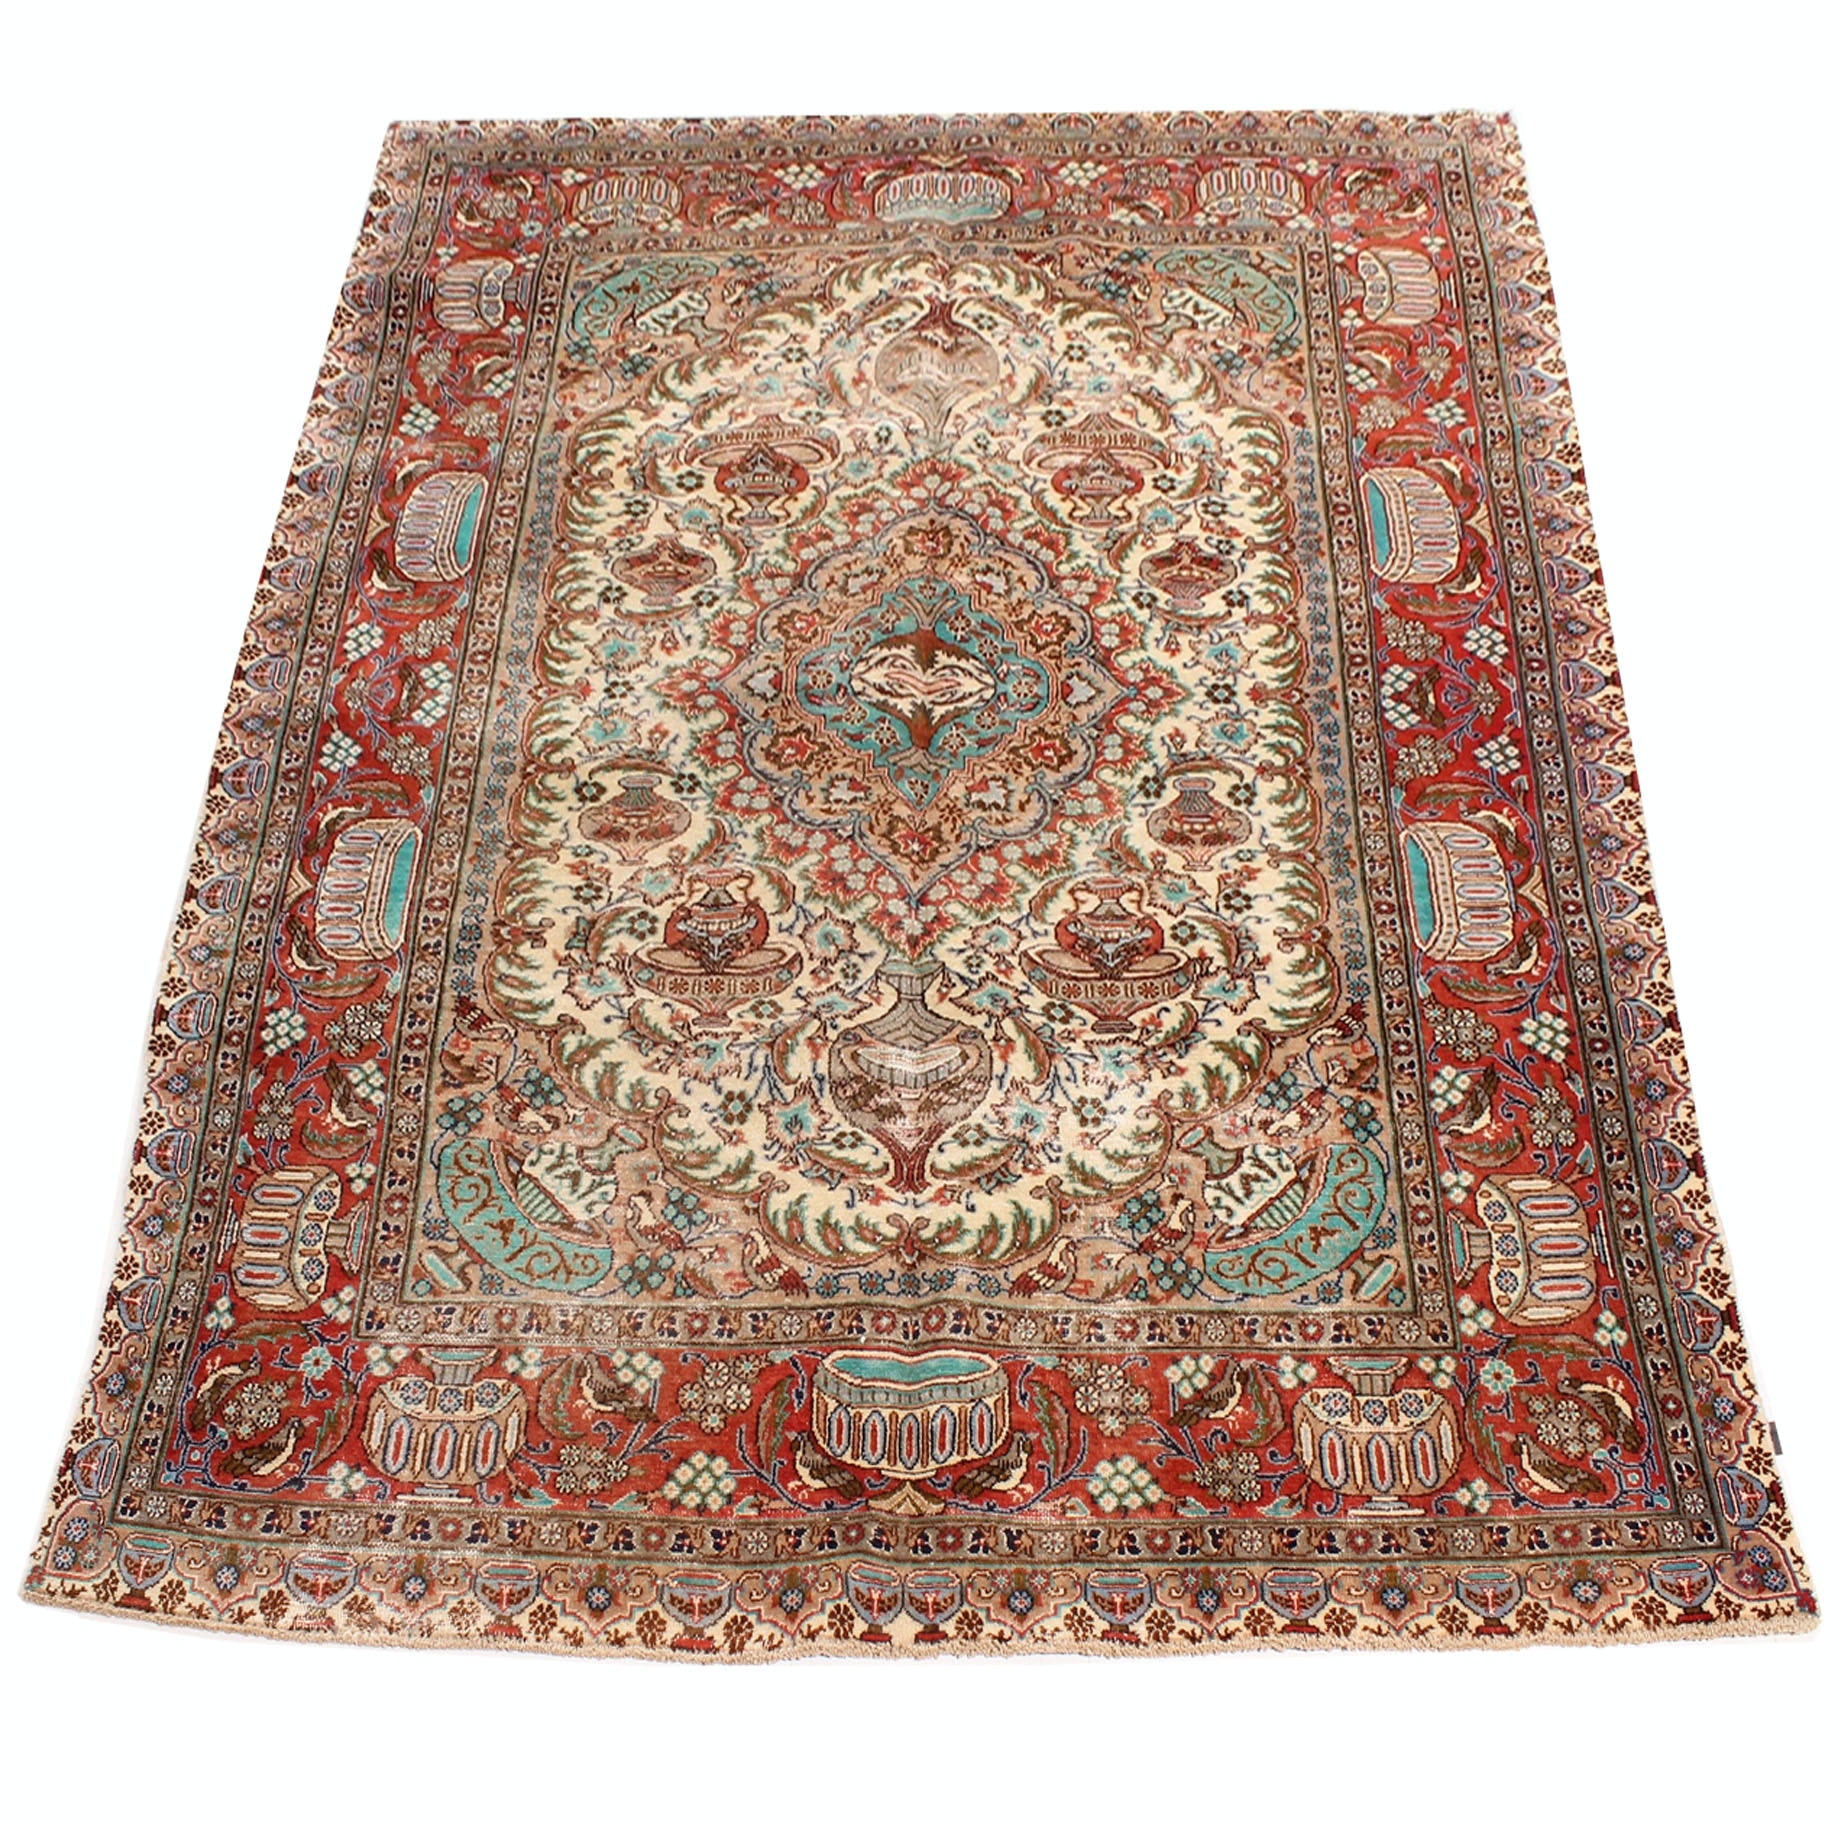 Vintage Hand Knotted Persian Pictorial Kashmar Rug by Boukaeyan